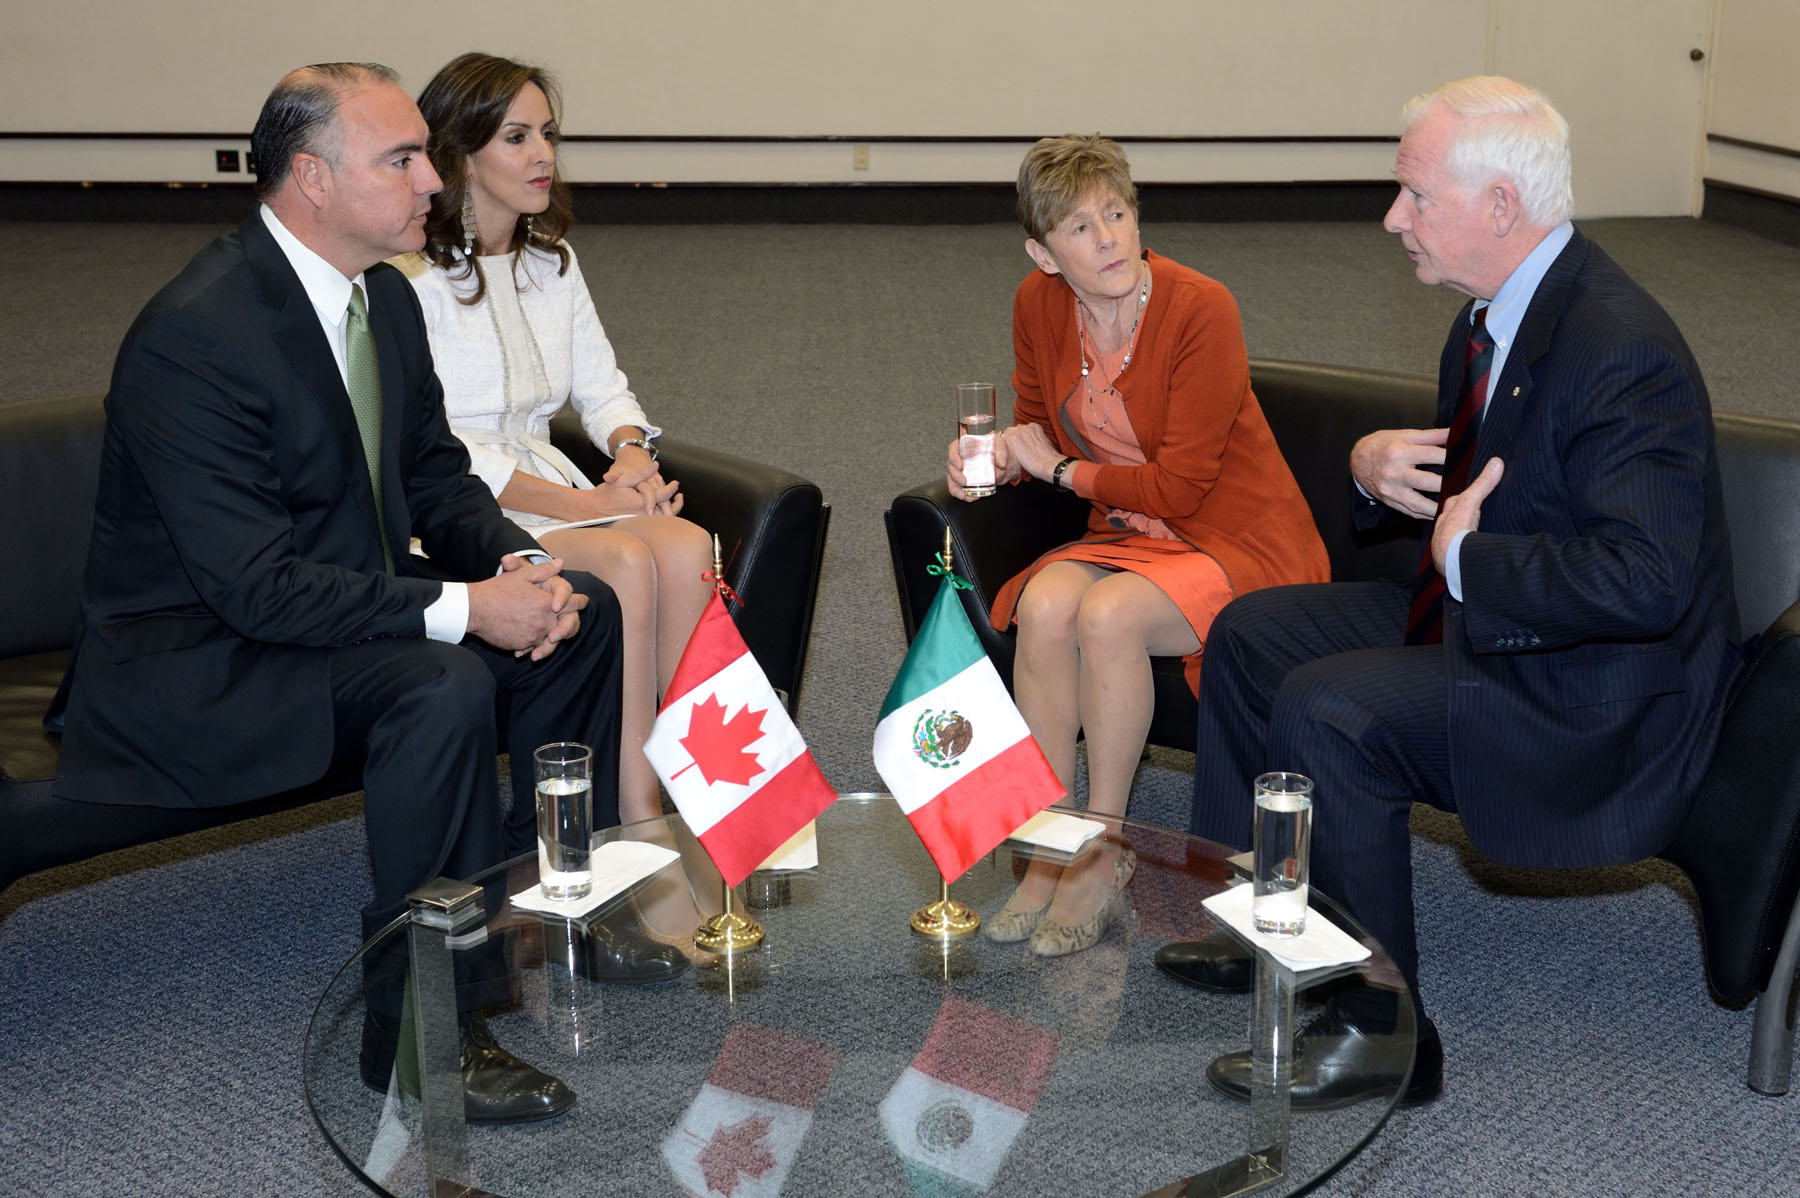 At the request of the Right Honourable Stephen Harper, Prime Minister of Canada, the Governor General undertook a visit to Mexico, from November 30 until December 2. Their first stop was Querétaro. They met with Mr. Jose E. Calzada Rovirosa, Governor of Querétaro, and his spouse Mrs. Sandra Albarran de Calzada.